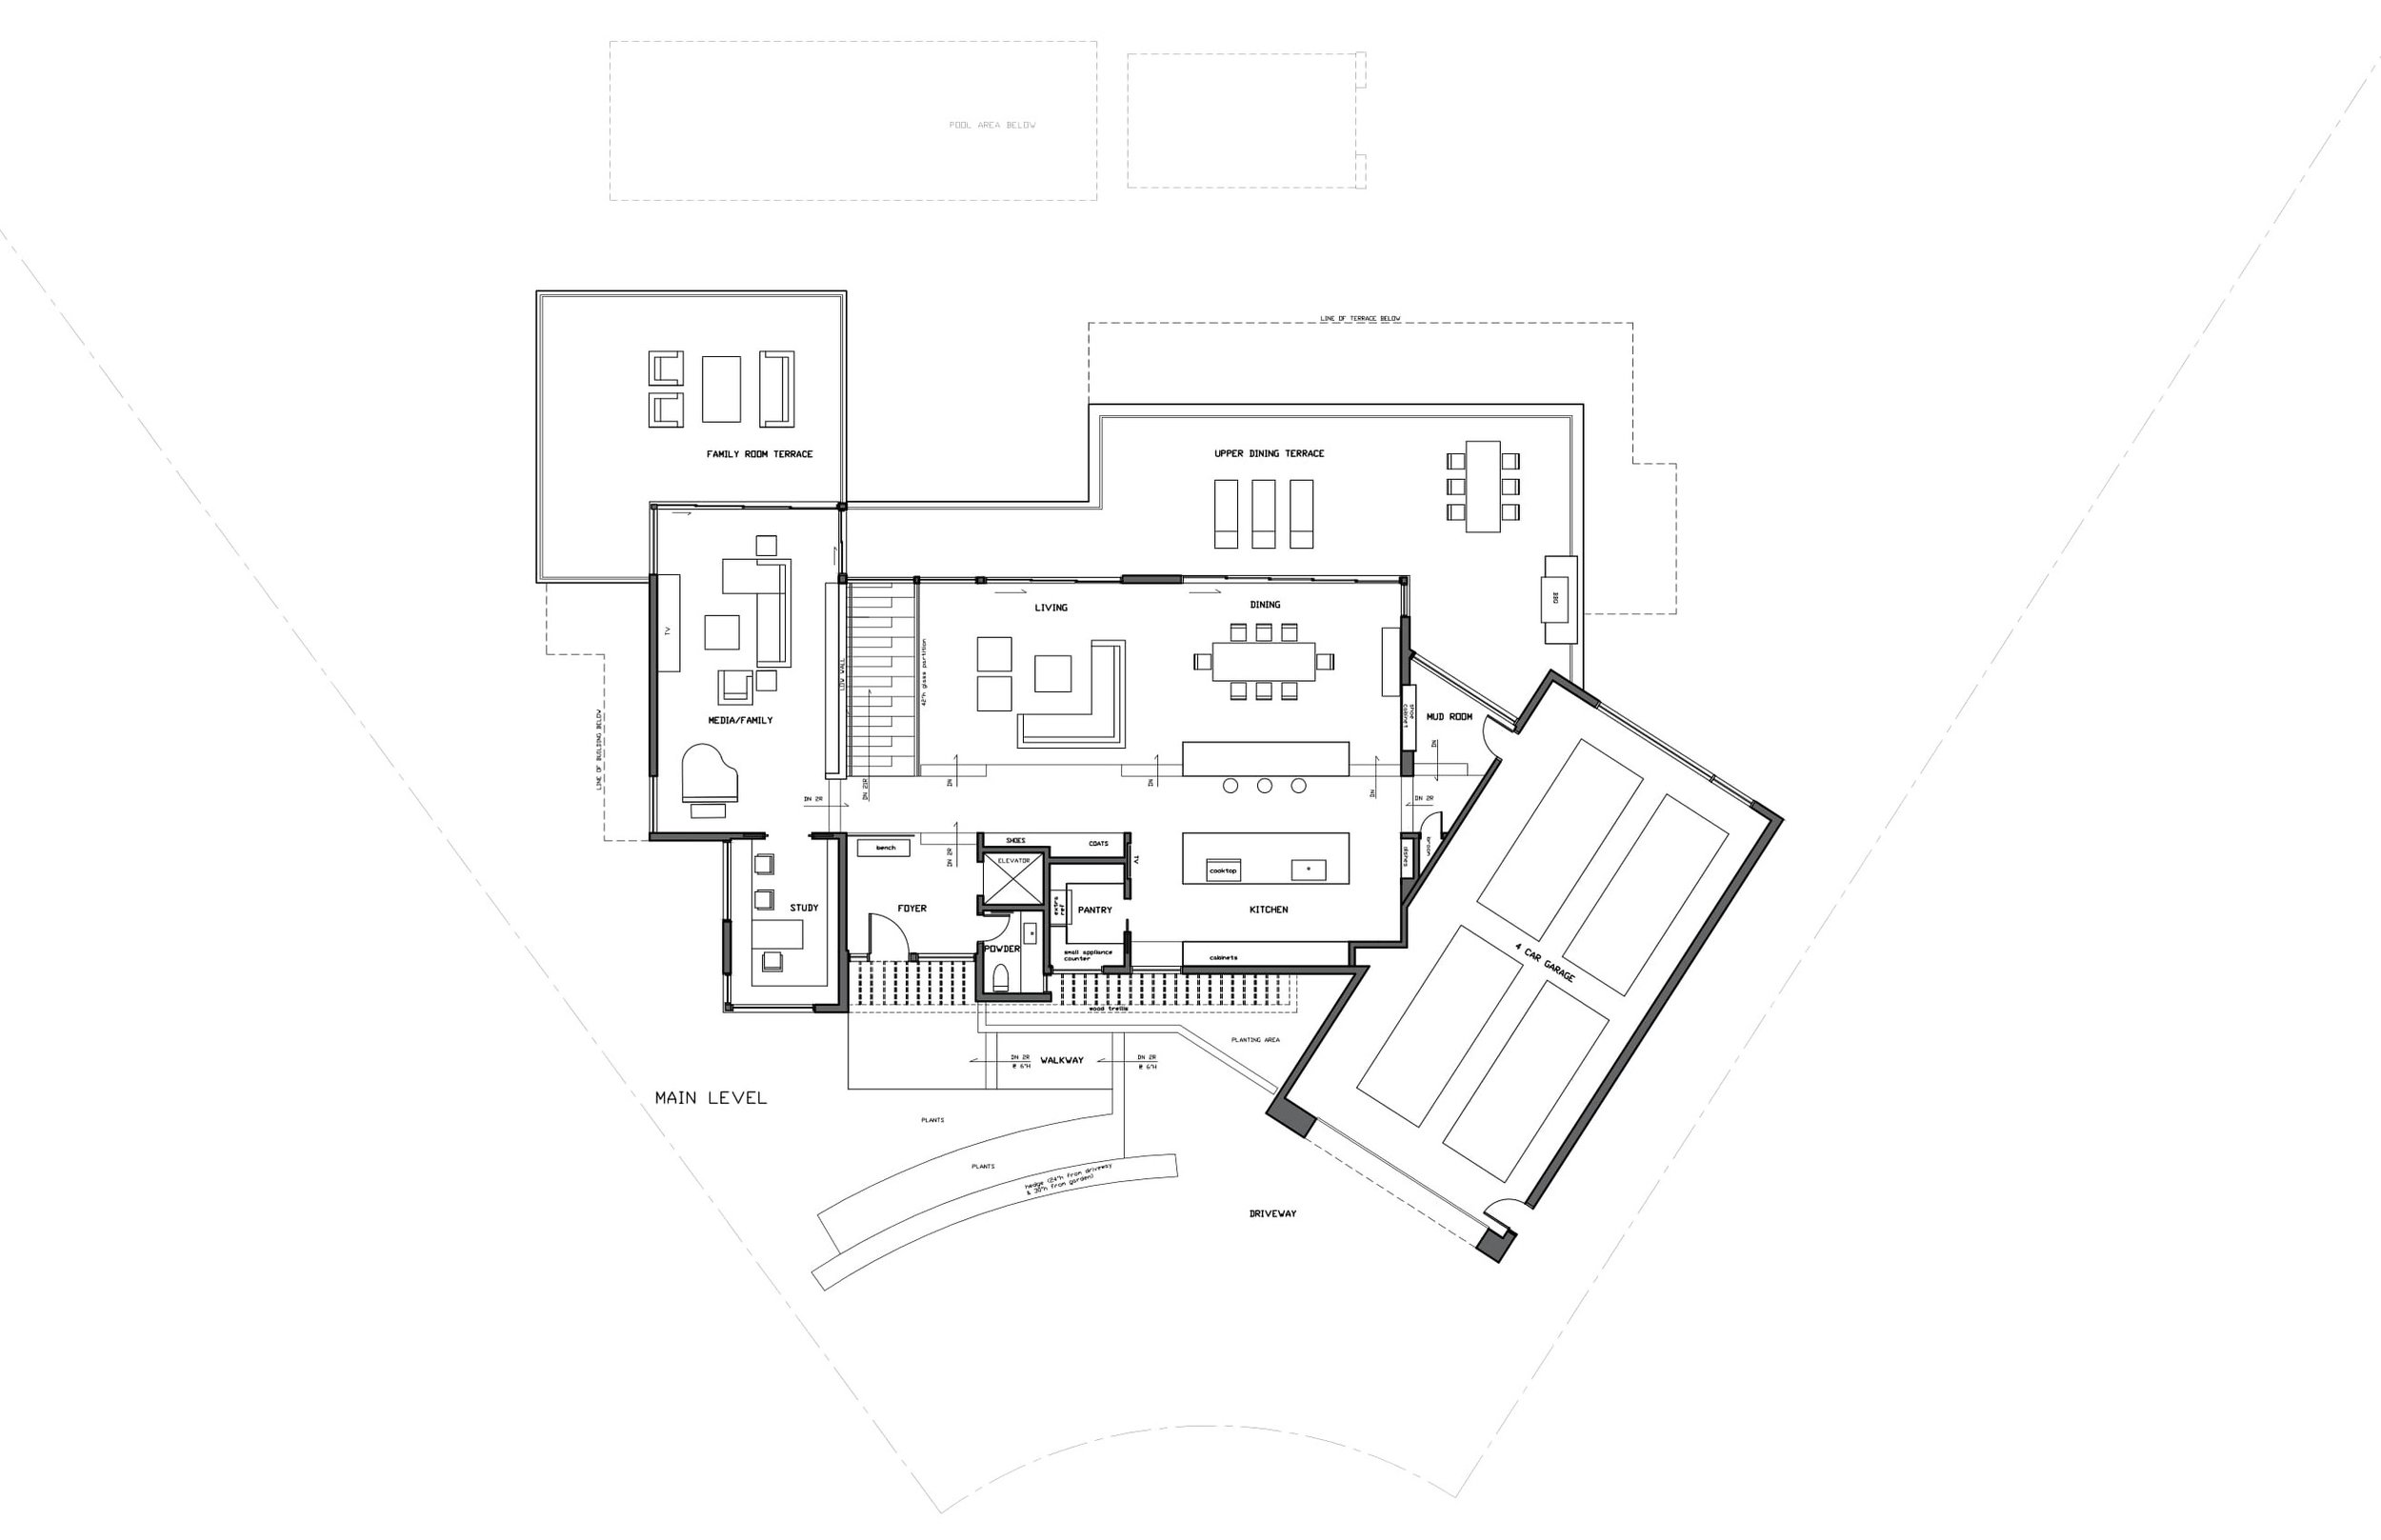 CONCEPT AND BUILDING PERMIT DRAWINGS